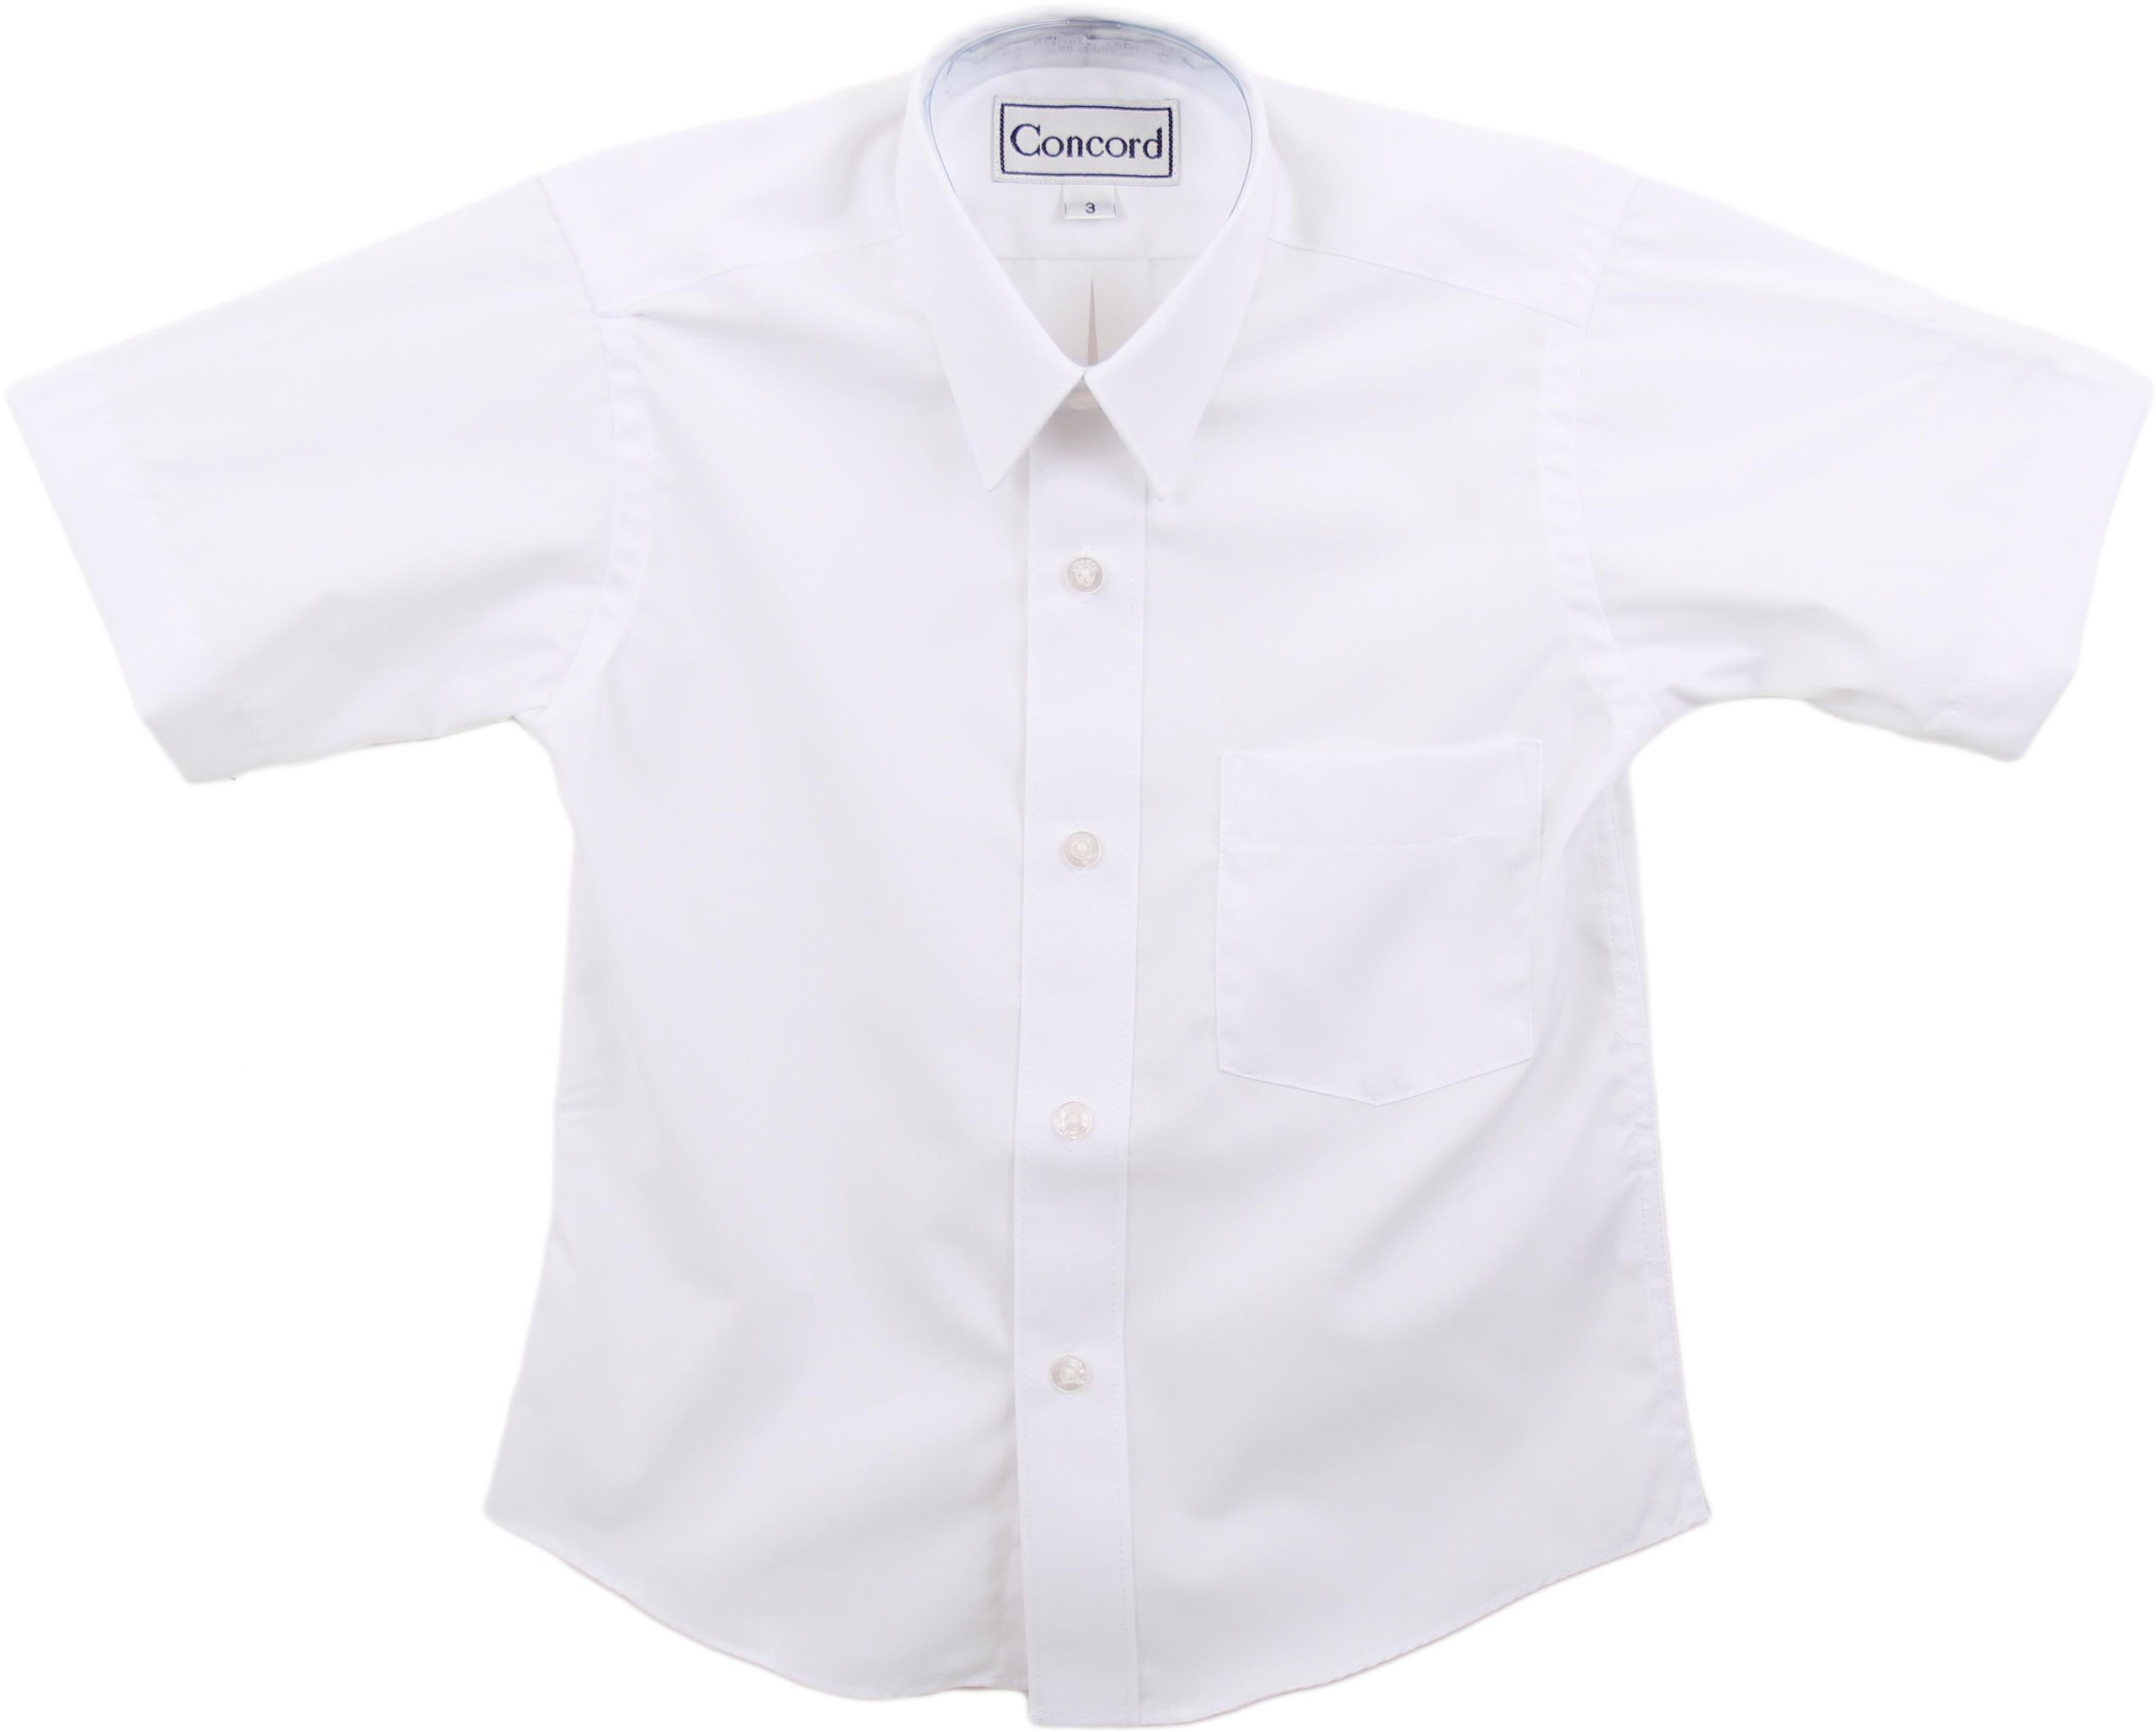 Concord Boys Short Sleeve White Dress Shirt - White, 10